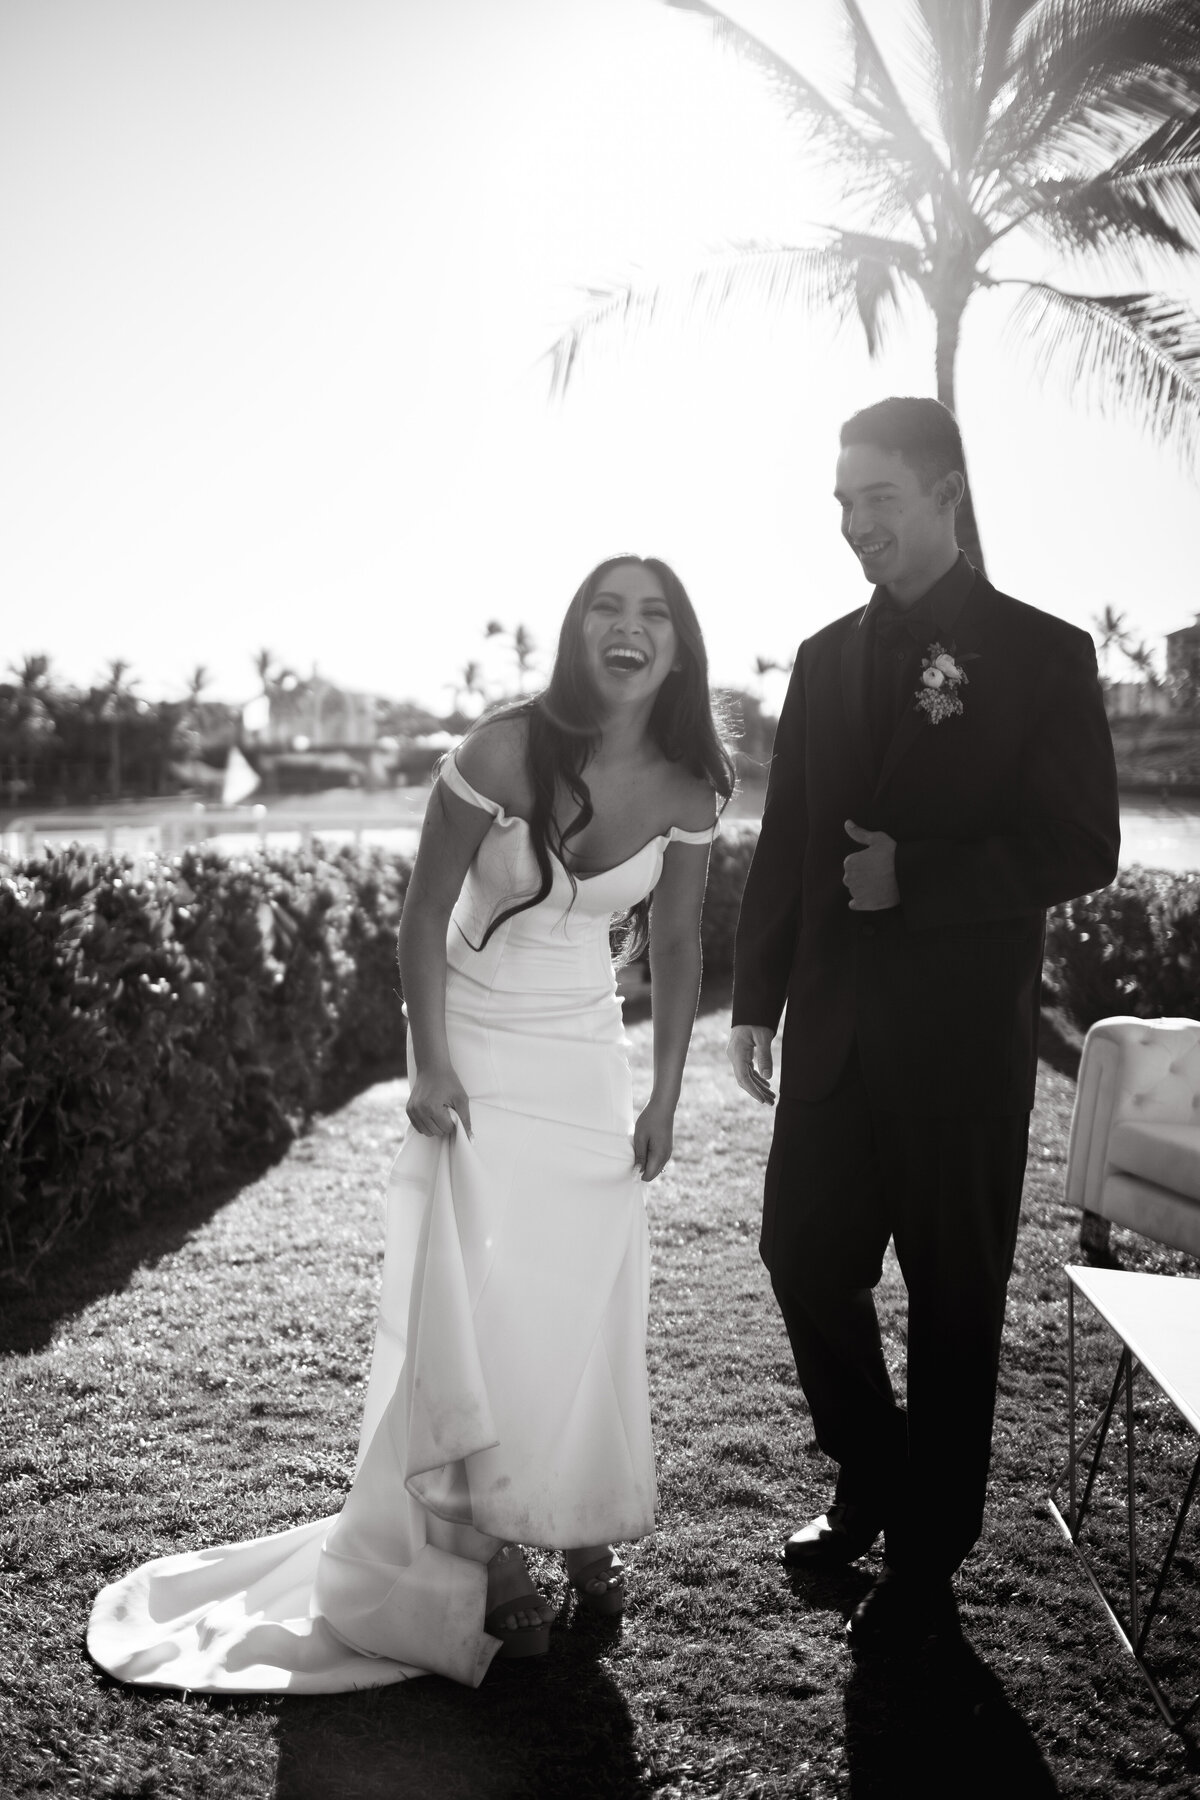 Bride laughing at the camera while she and the groom are walking on the lawn